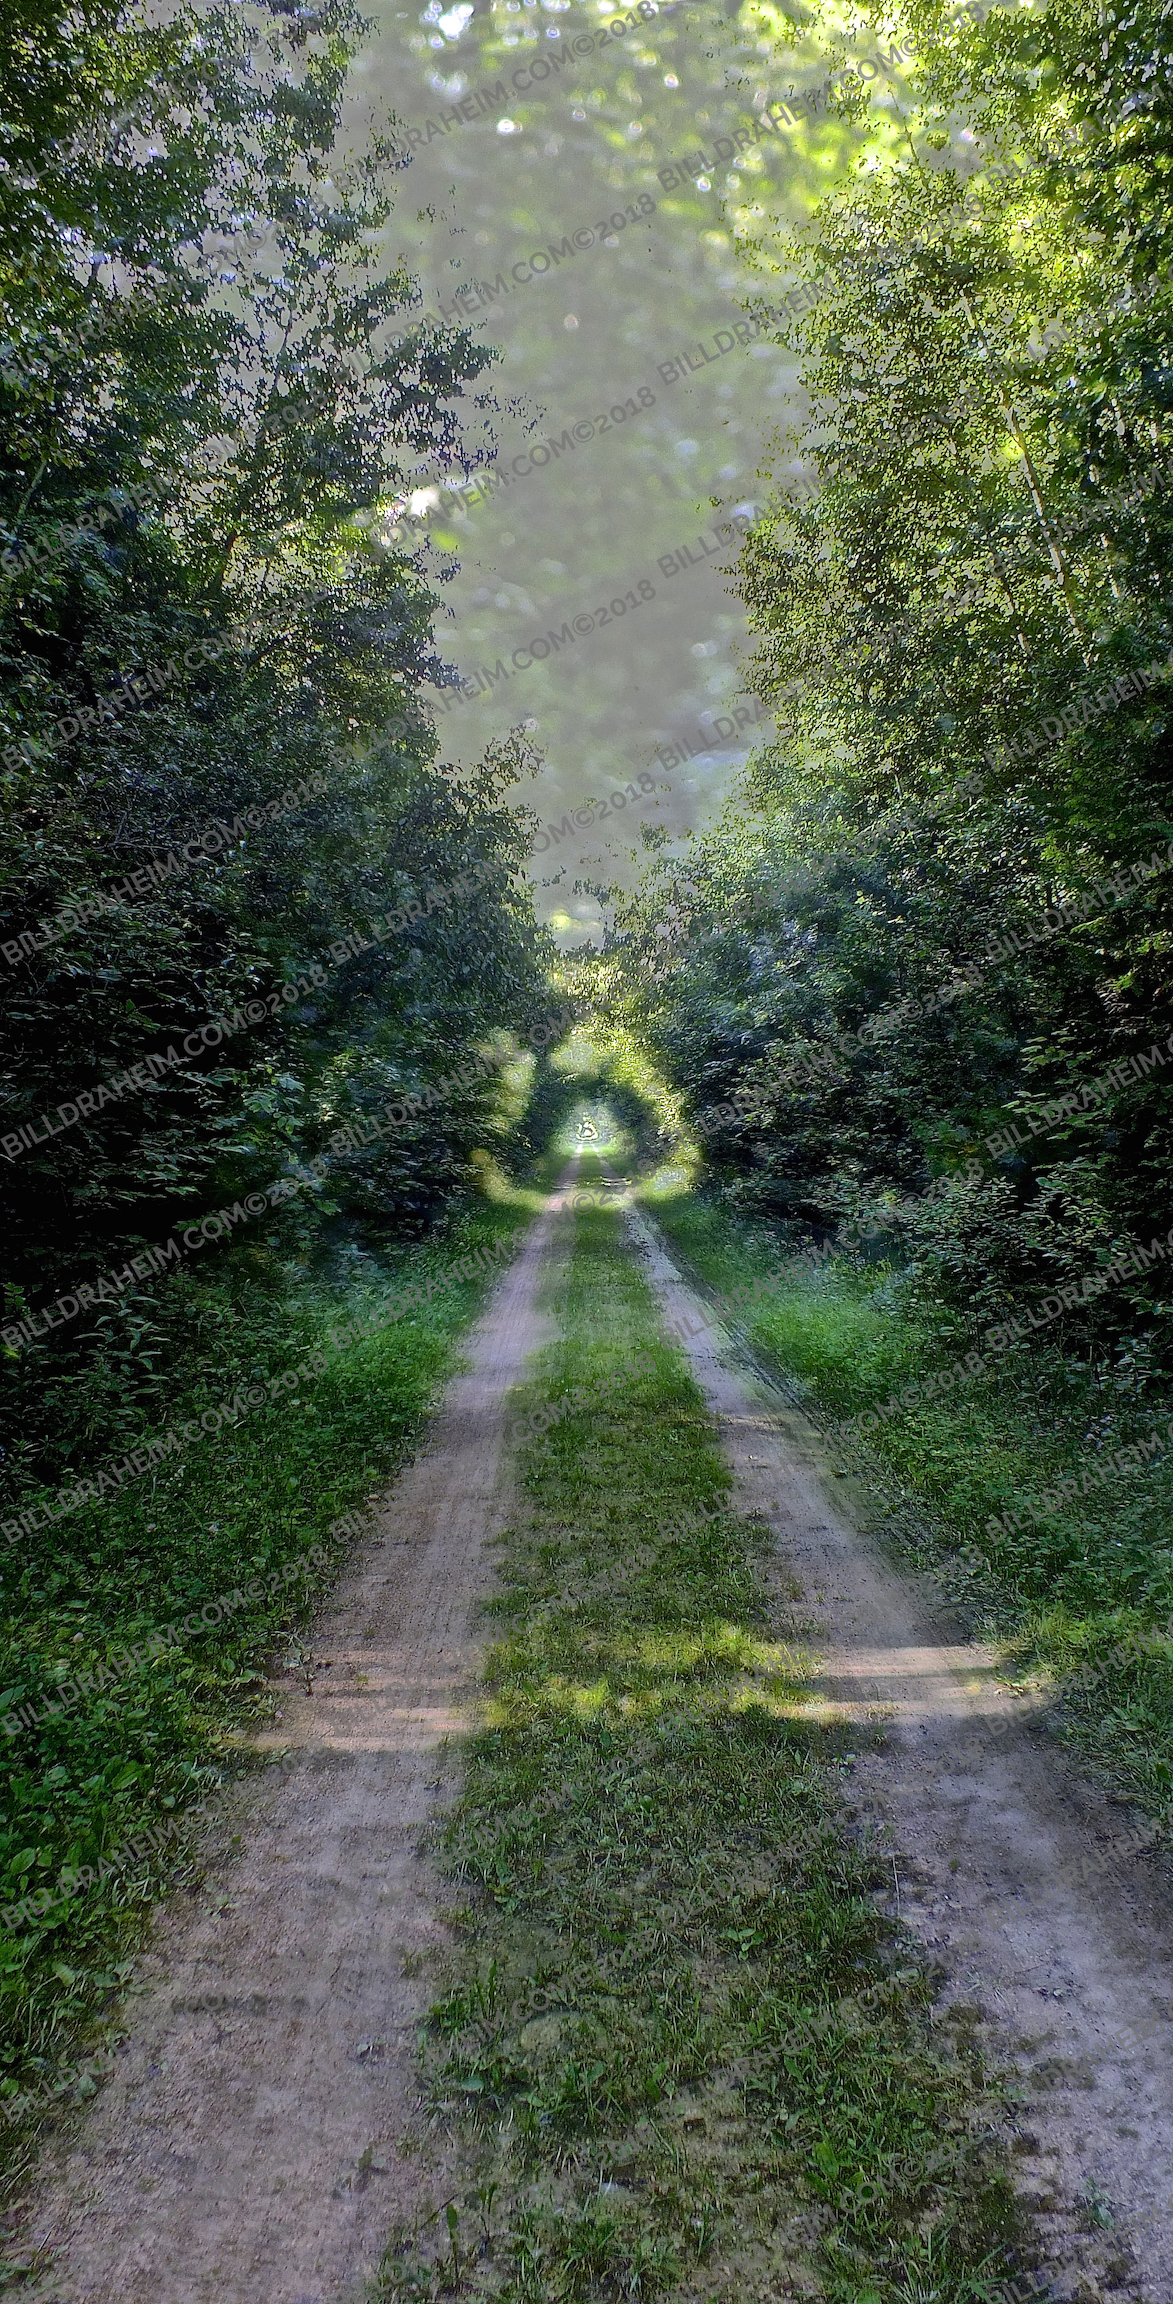 ROADS YOU'LL NEVER TRAVEL